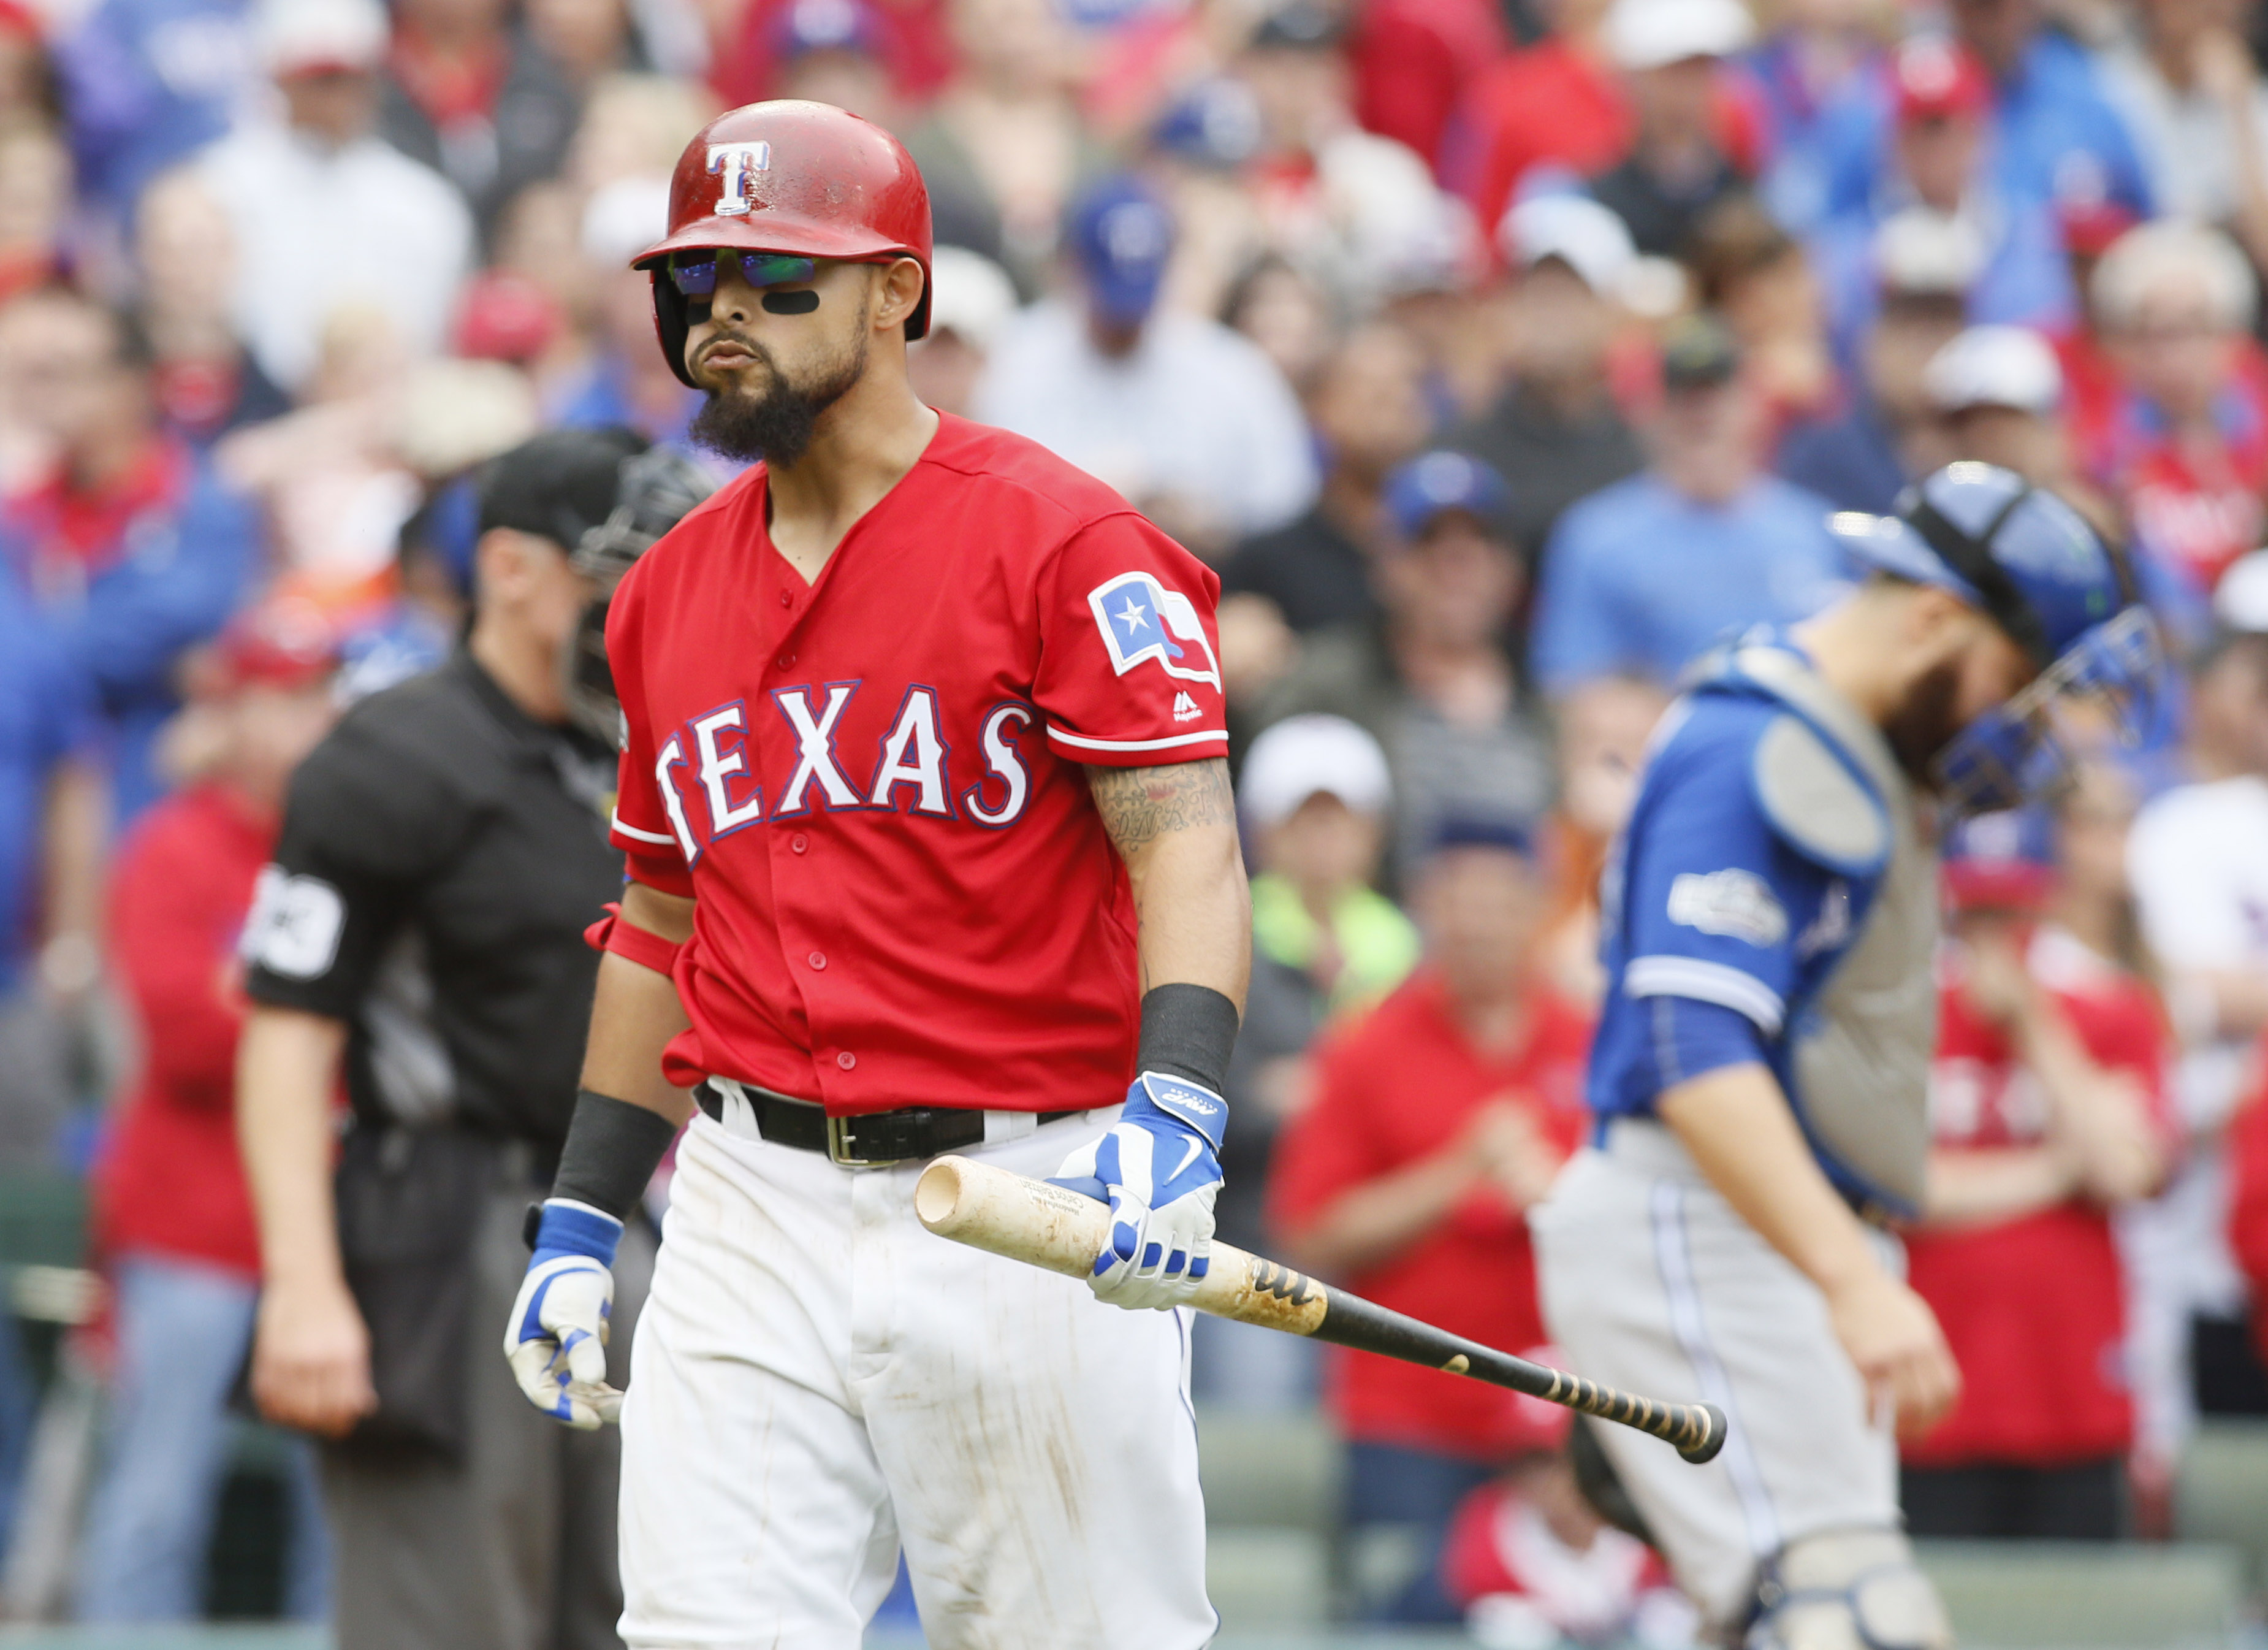 pretty nice 464bf fa979 MLB: Top 5 Worst Uniforms in Major League Baseball Right Now